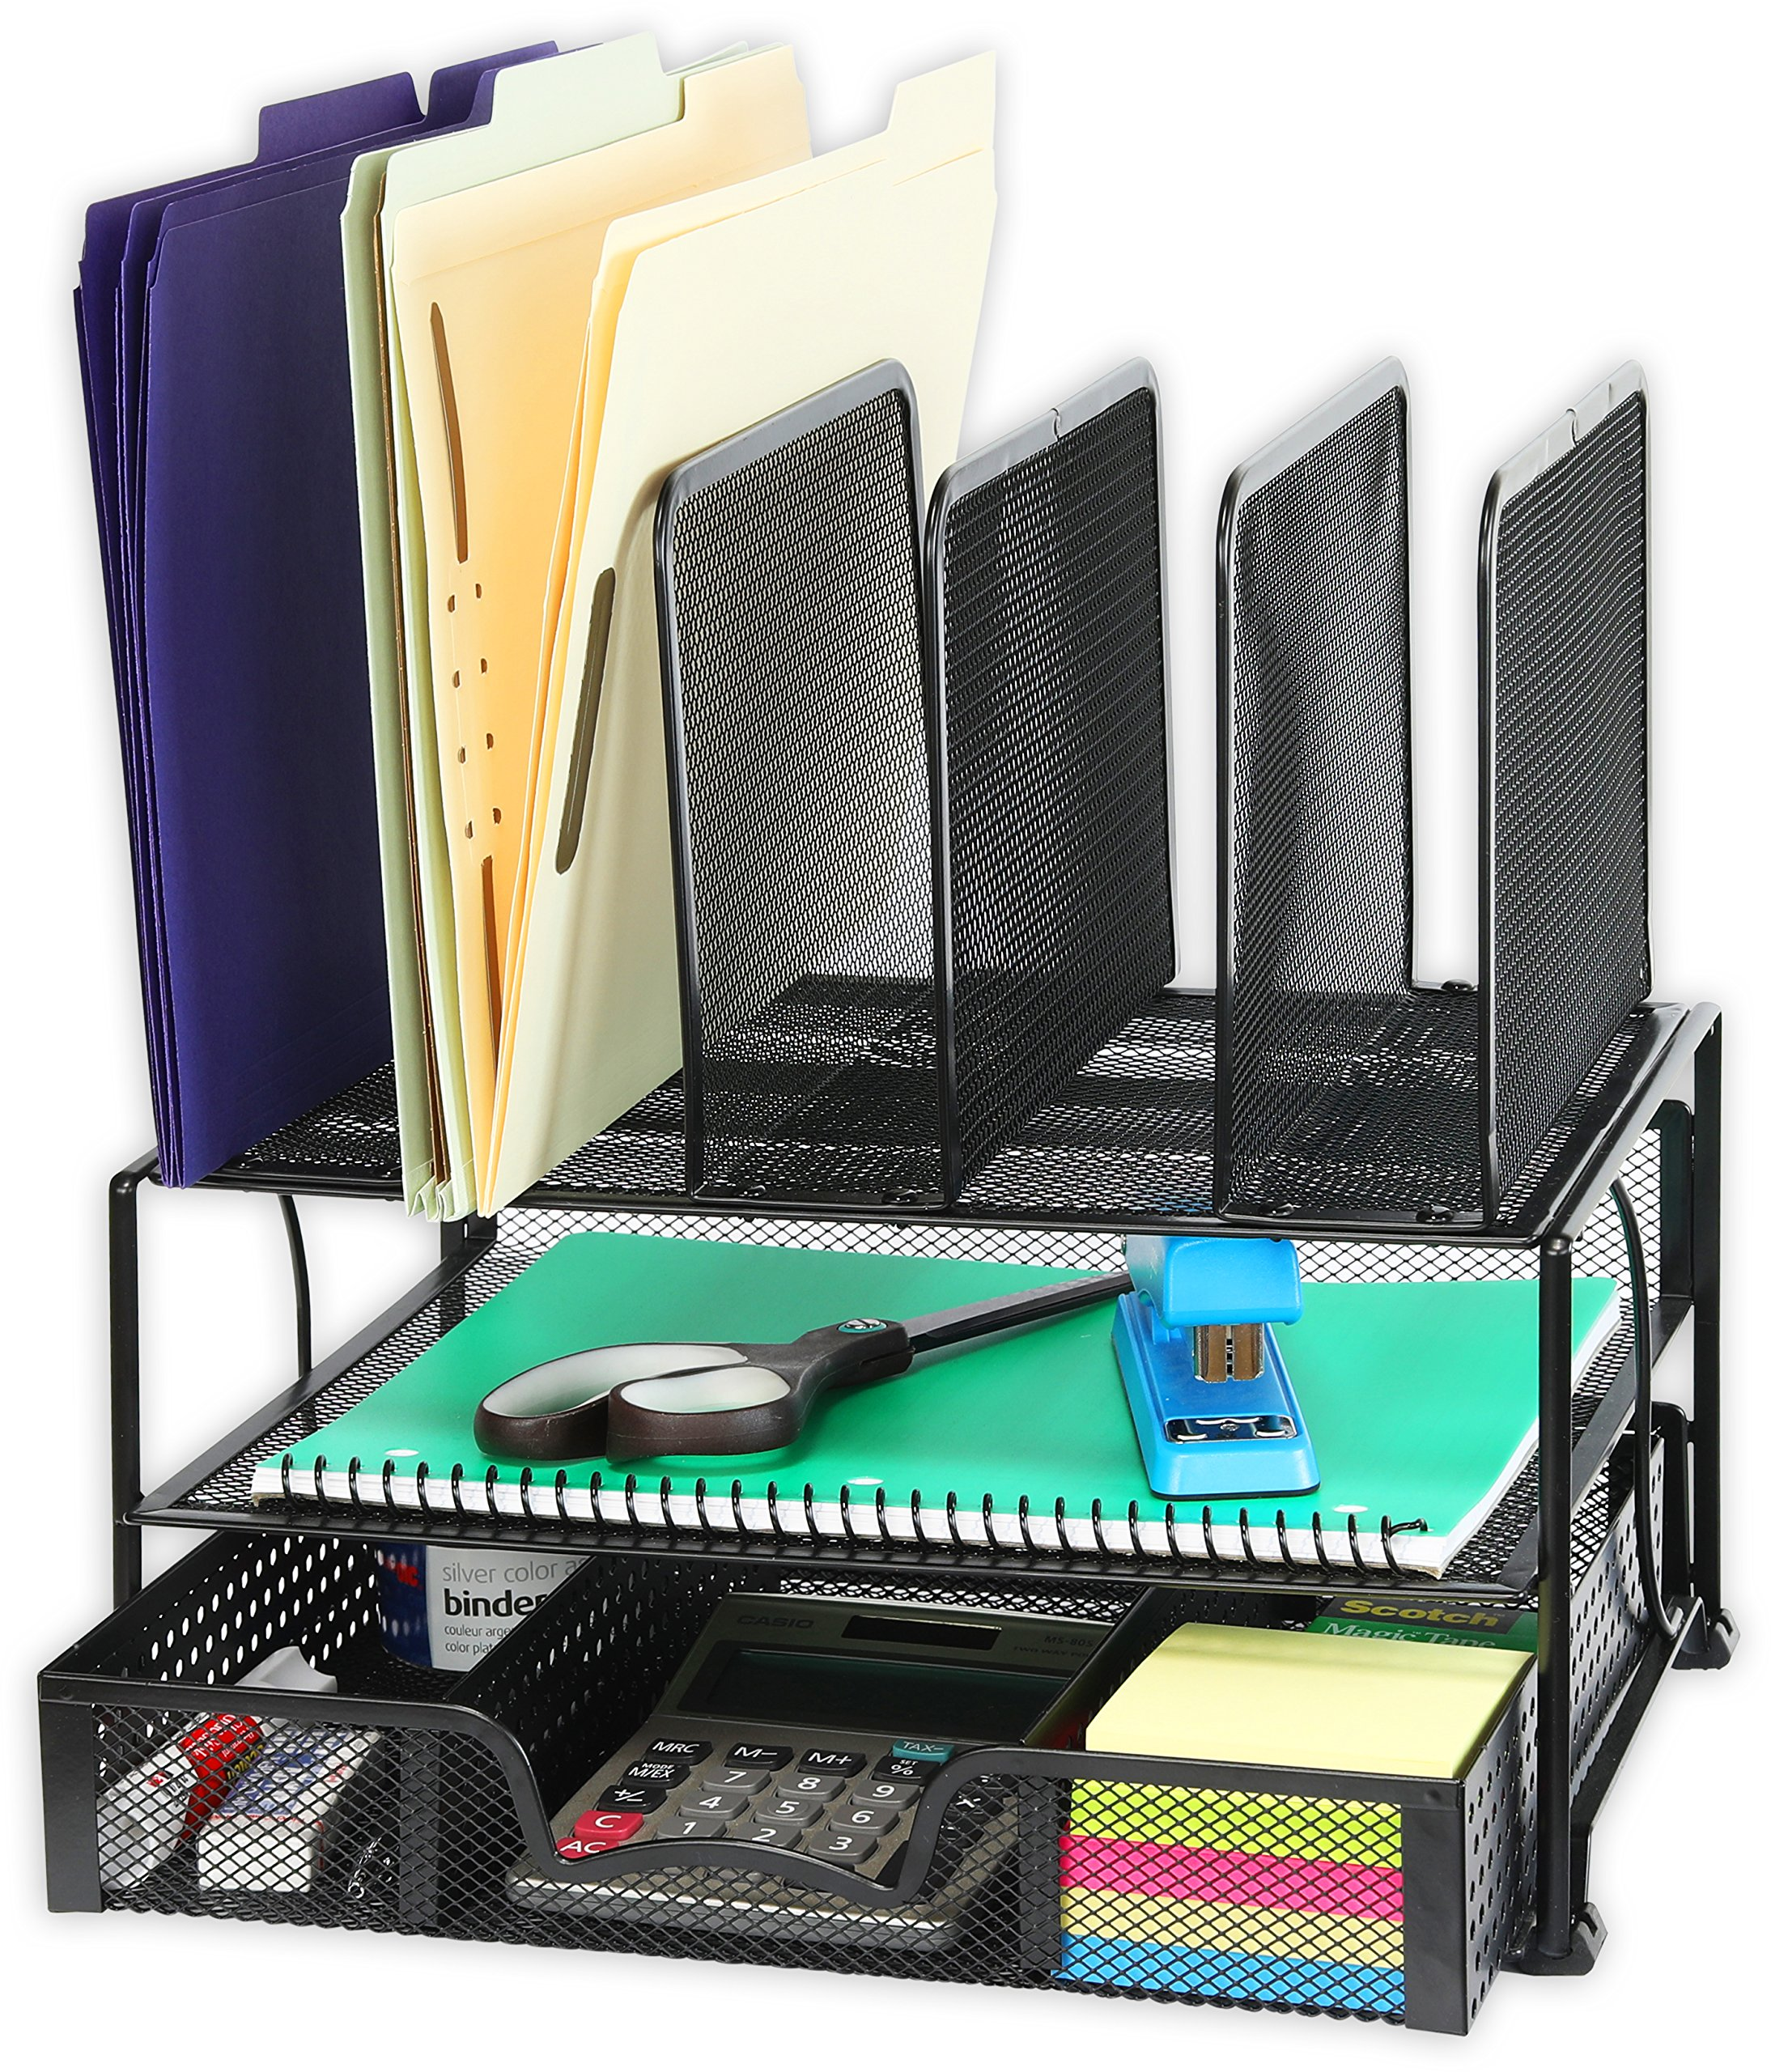 SimpleHouseware Mesh Desk Organizer with Sliding Drawer, Double Tray and 5 Upright Sections, Black by Simple Houseware